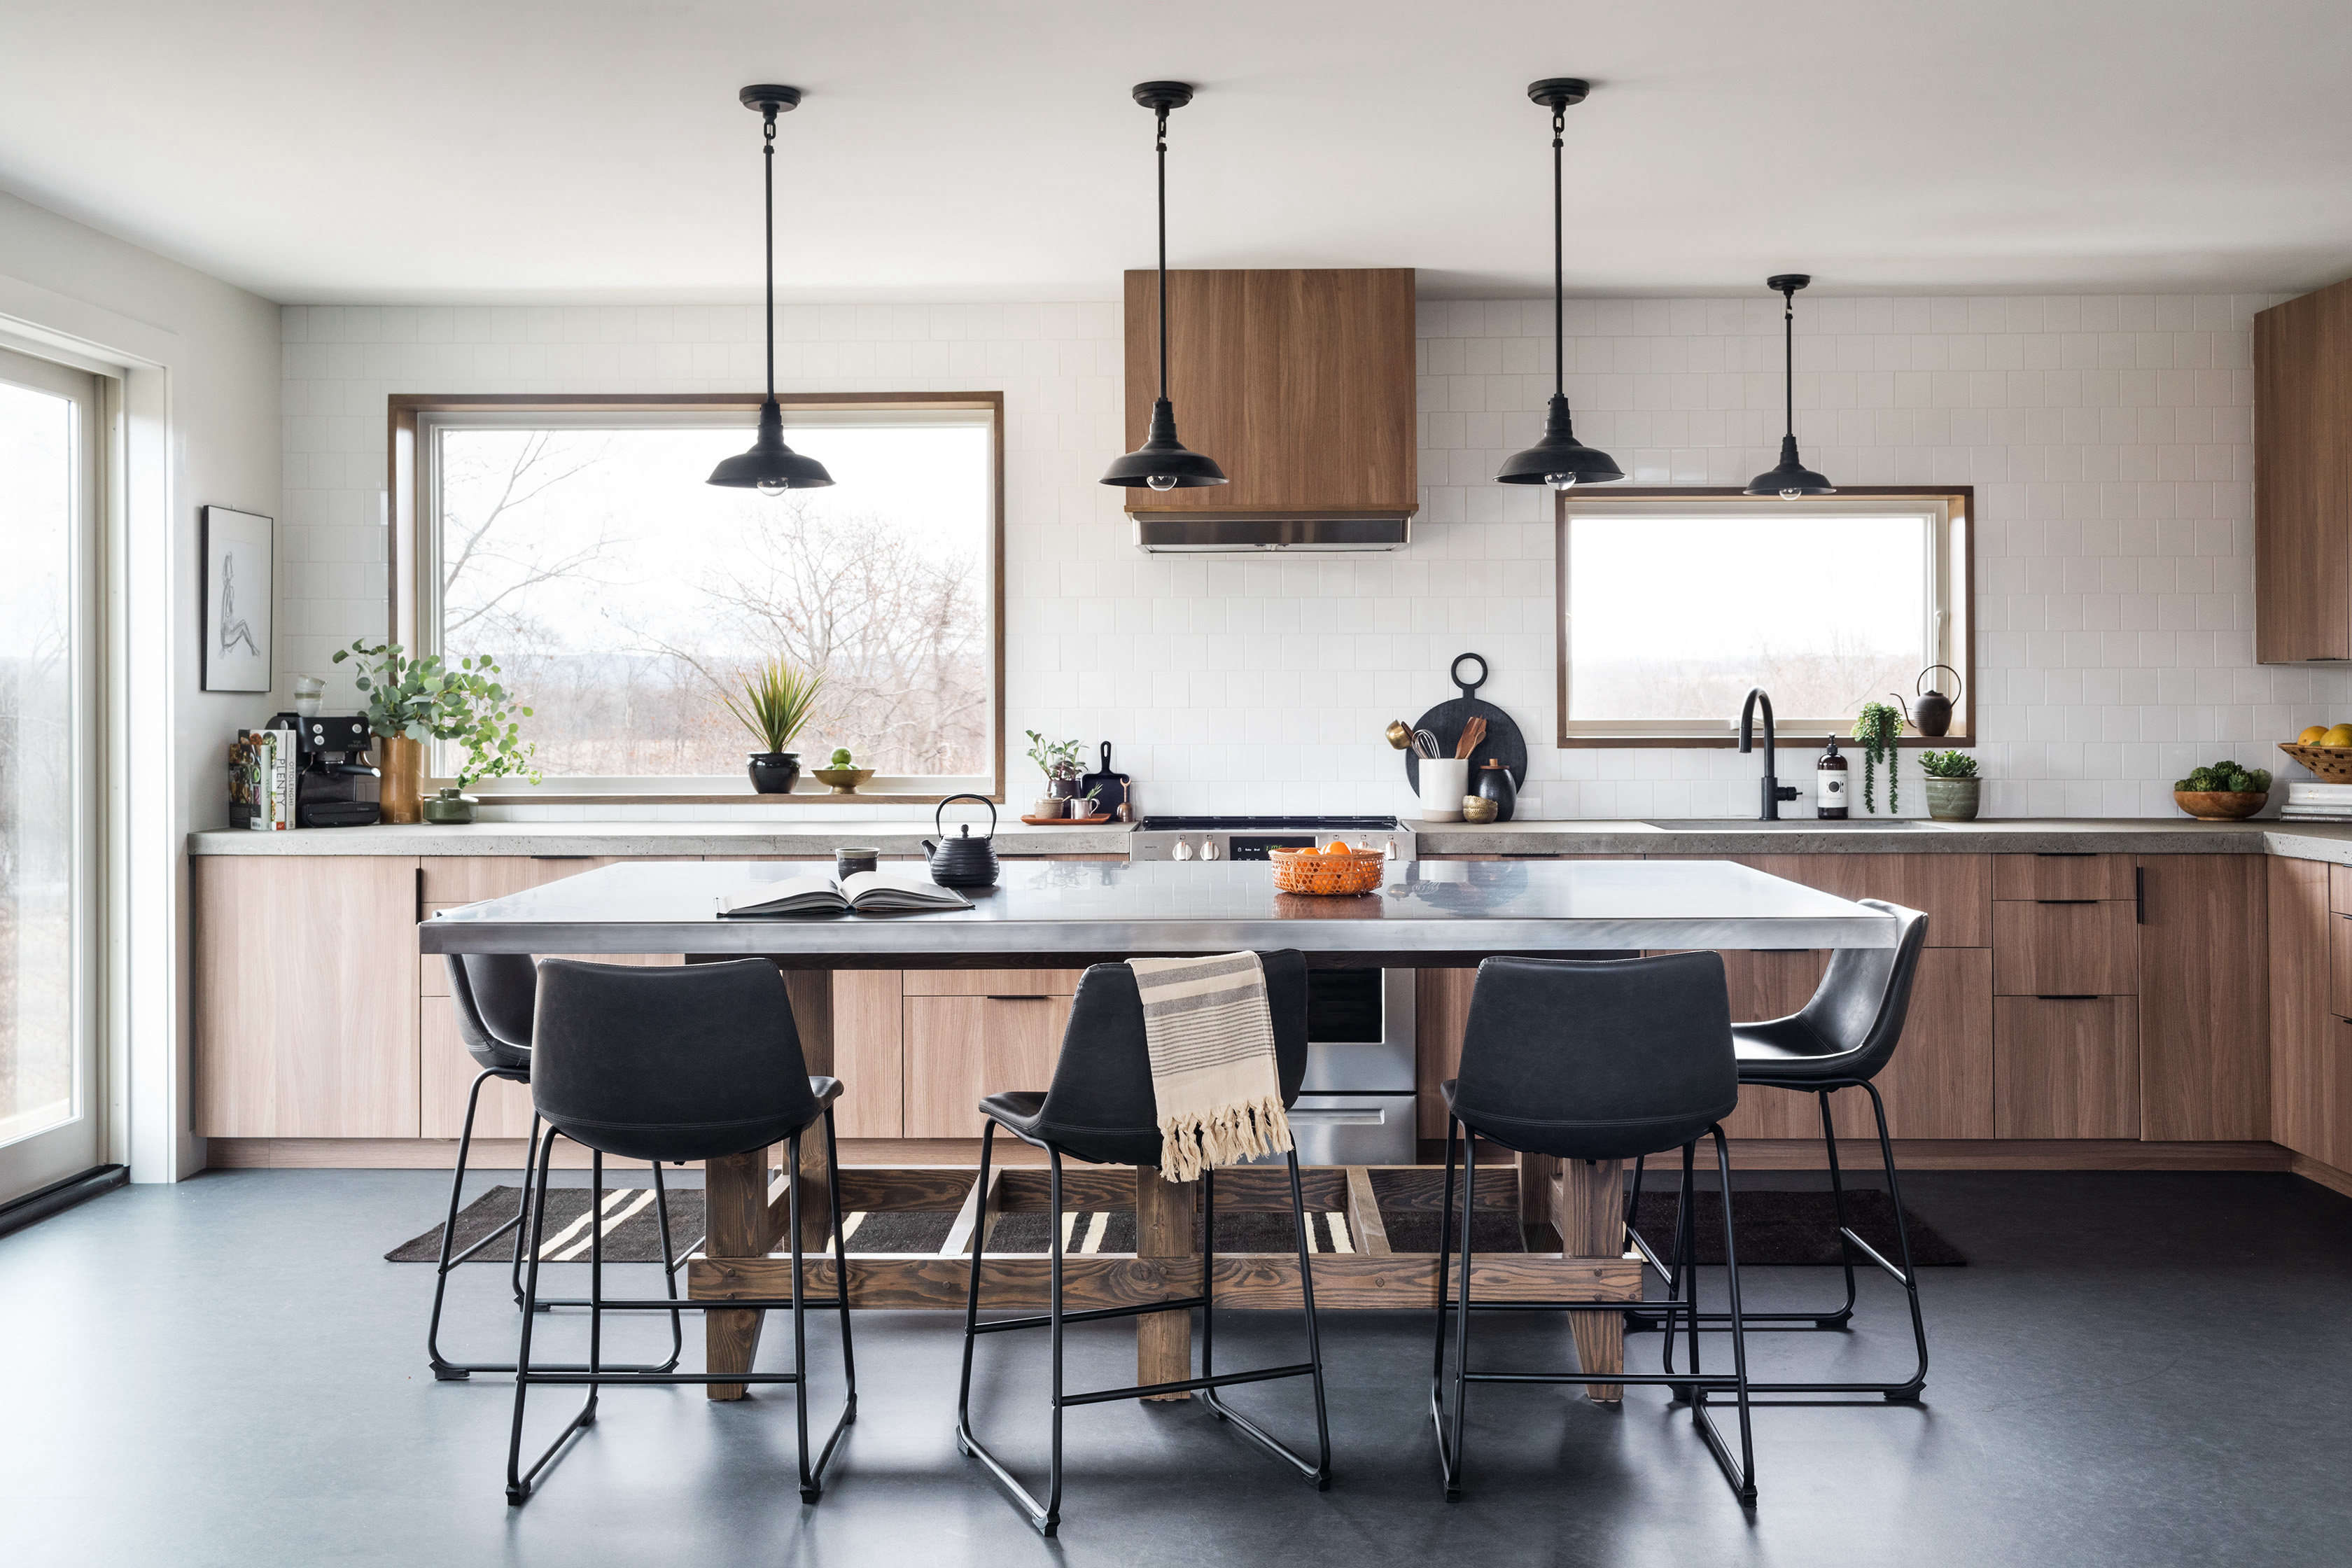 Kitchen of the Week: An Eco-Friendly, Elevated Ikea Kitchen ...